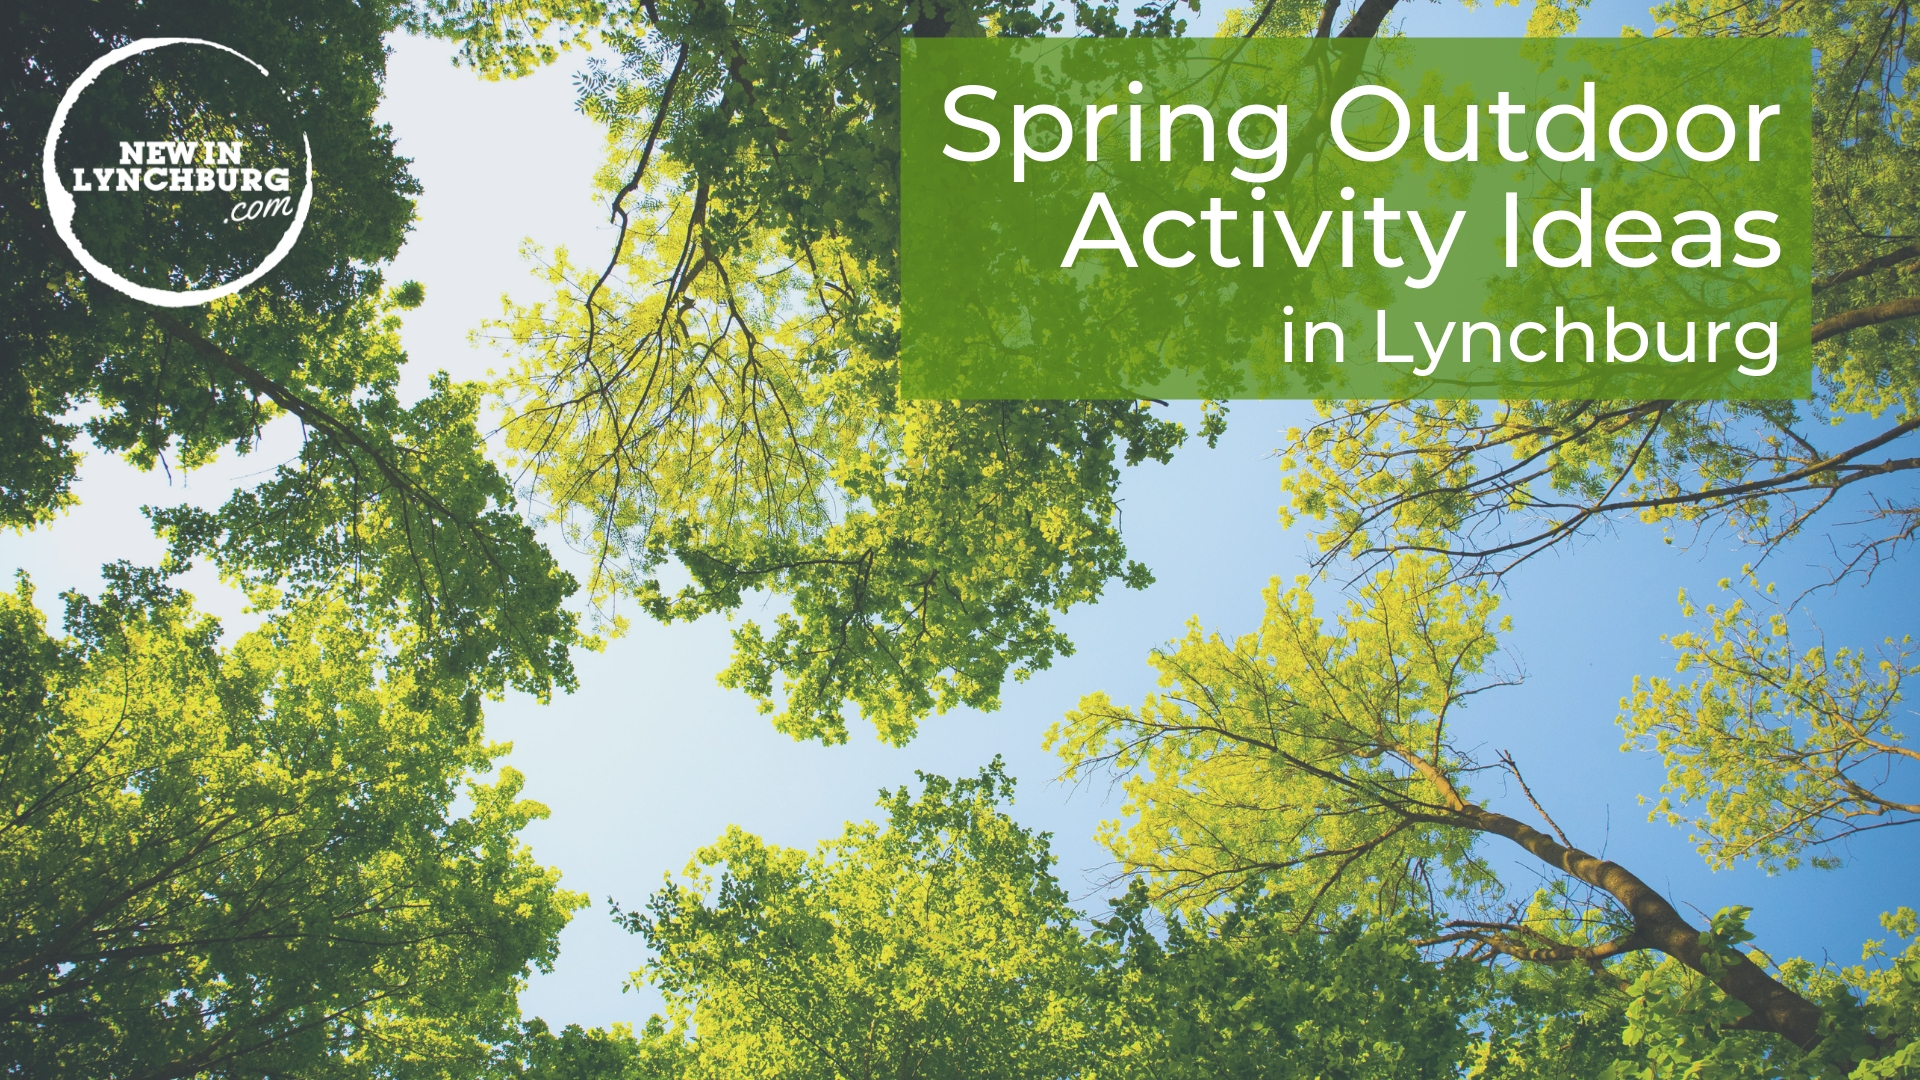 Spring Outdoor Activity Ideas in Lynchburg - After a bitterly cold winter, it is finally feeling a bit warmer despite a couple of bouts of snow. During the warmer days, many people feel desperate to get outside and enjoy the nice weather. Here are four outdoor activities that you might enjoy!